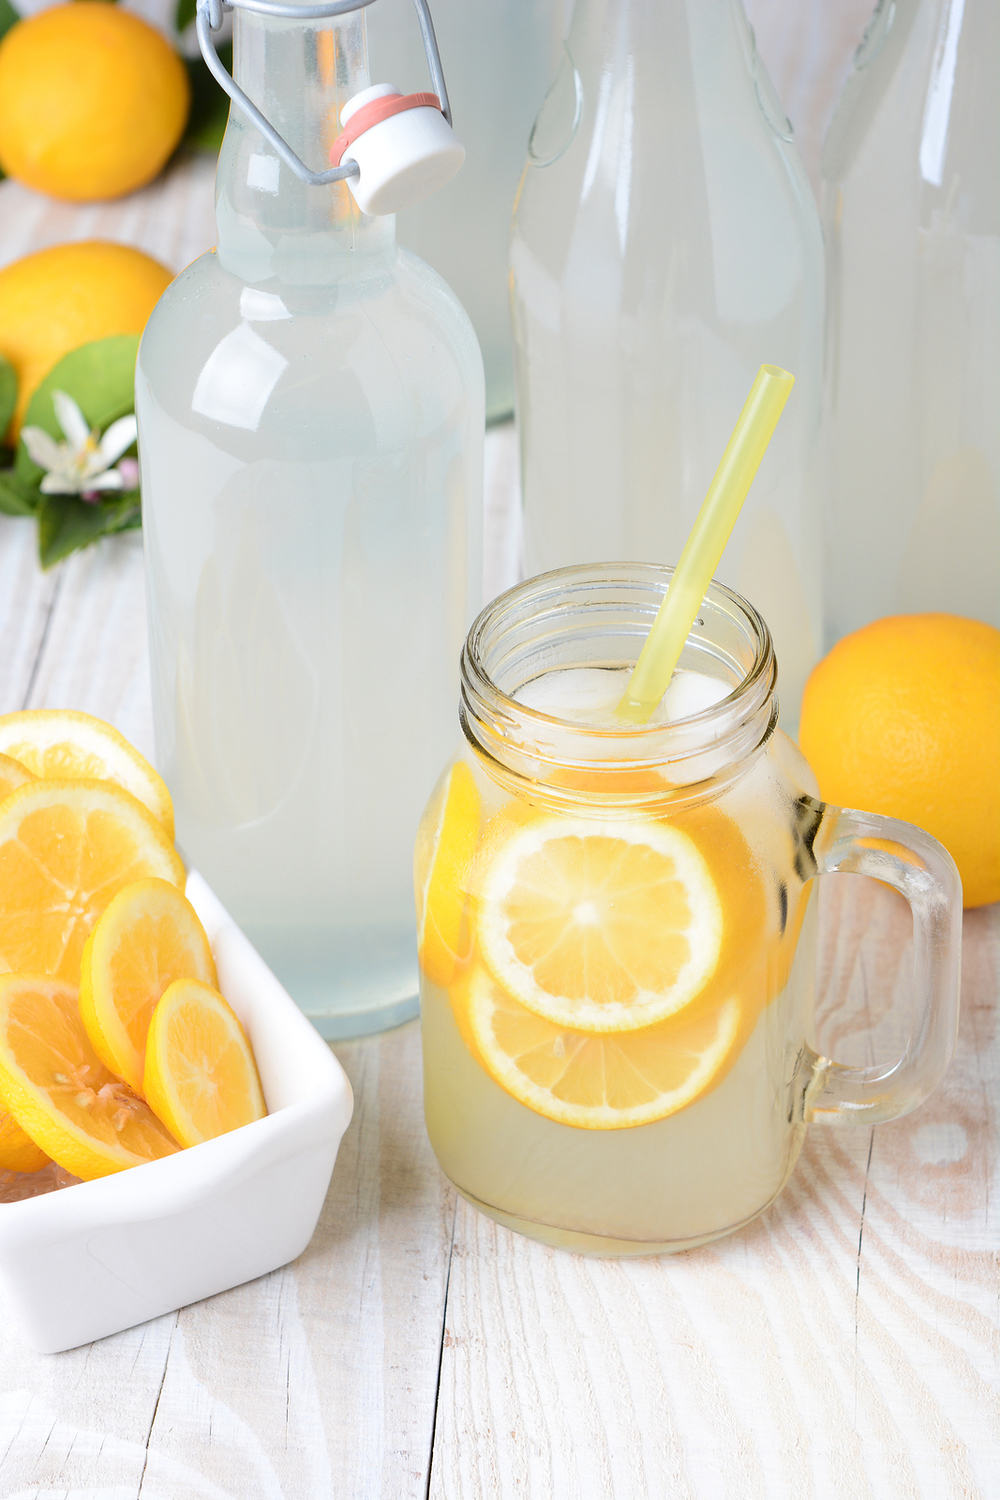 bigstock-Old-fashioned-sparkling-lemona-61849550.jpg